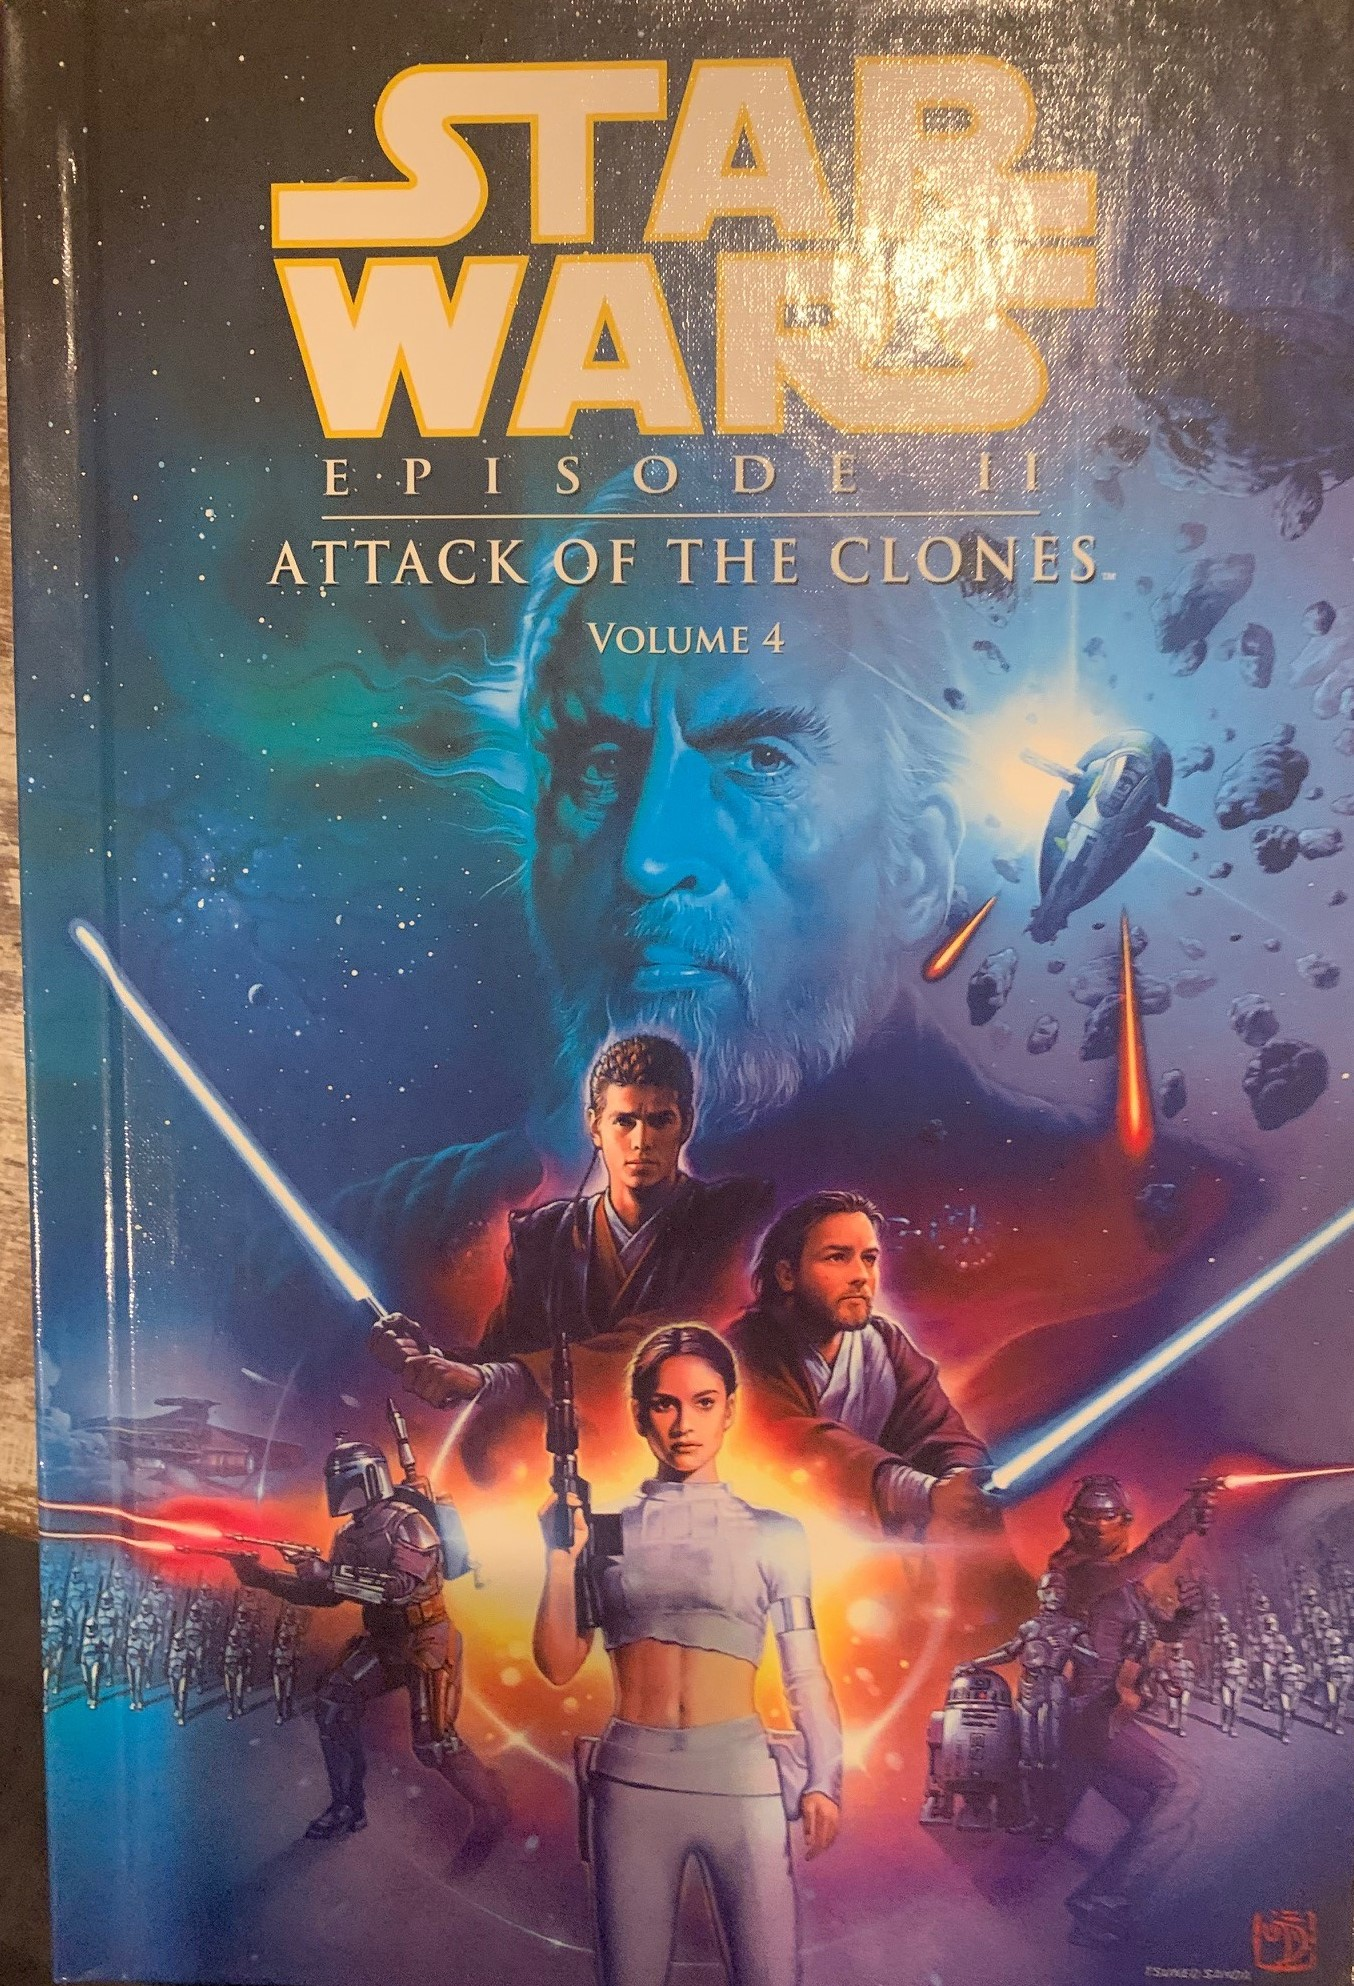 Star Wars Episode II: Attack of the Clones (Spotlight Comic Edition, Volume 4)